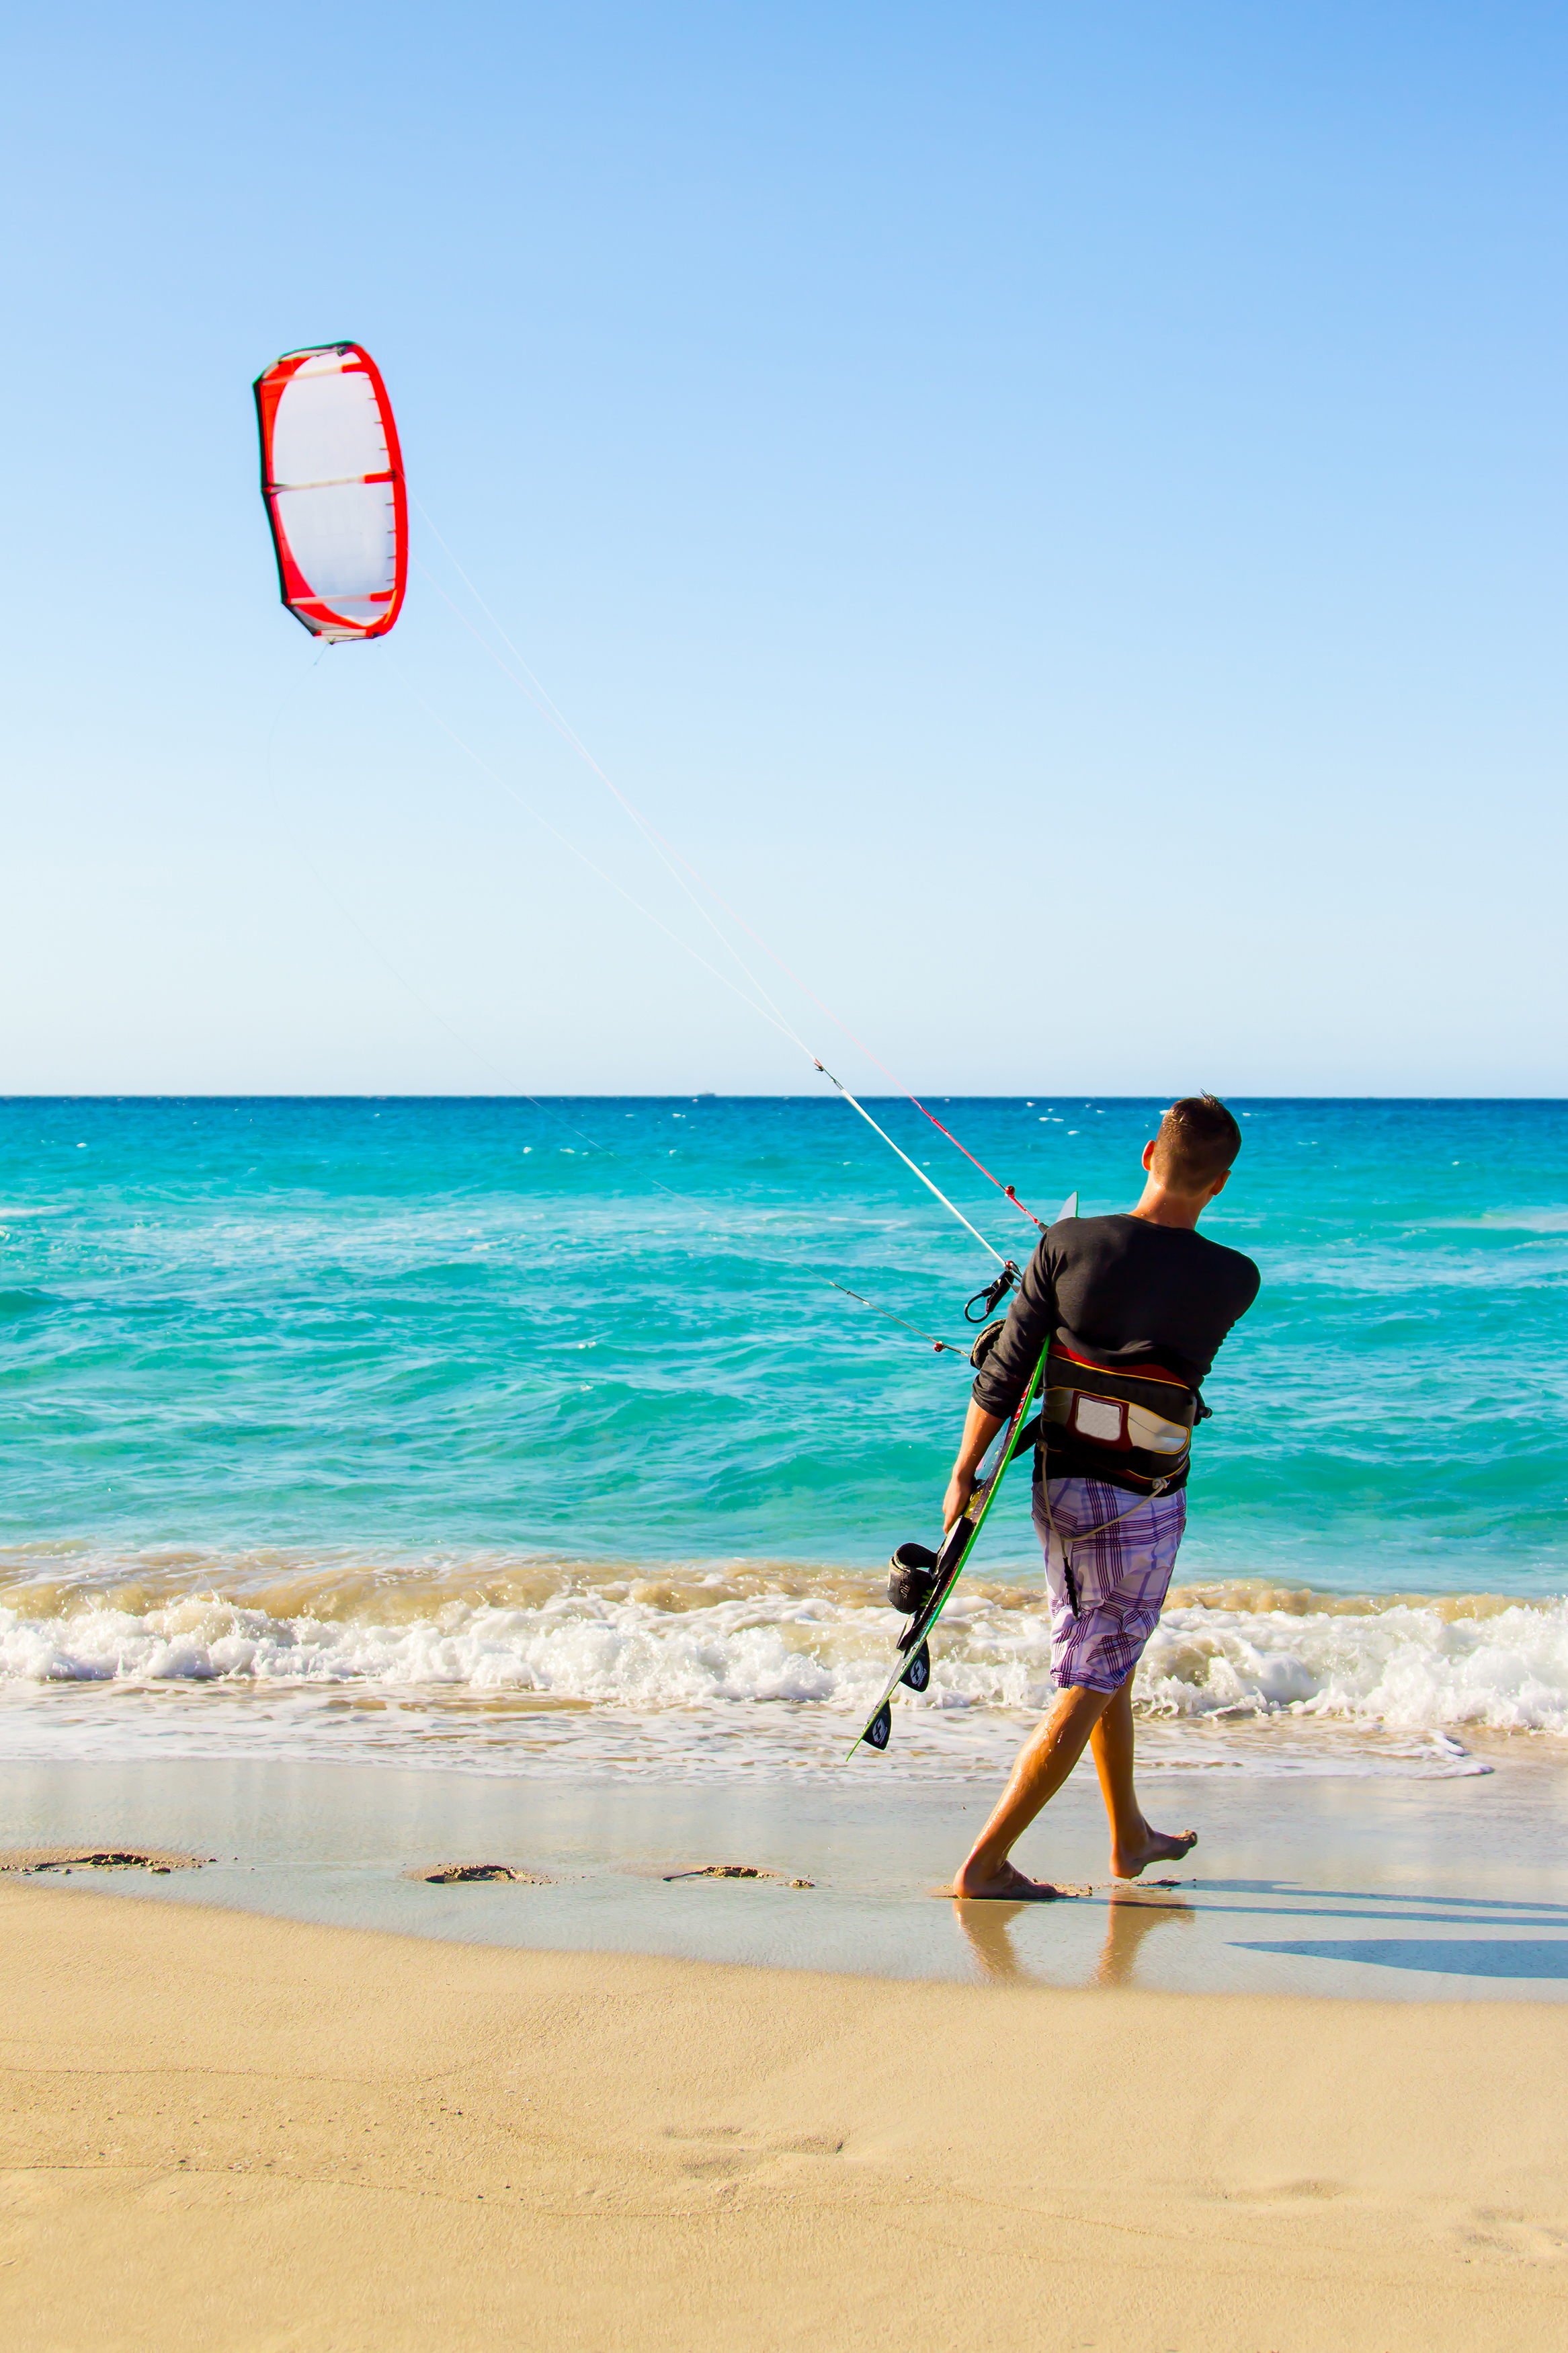 Ever Thought About Kiteboarding?